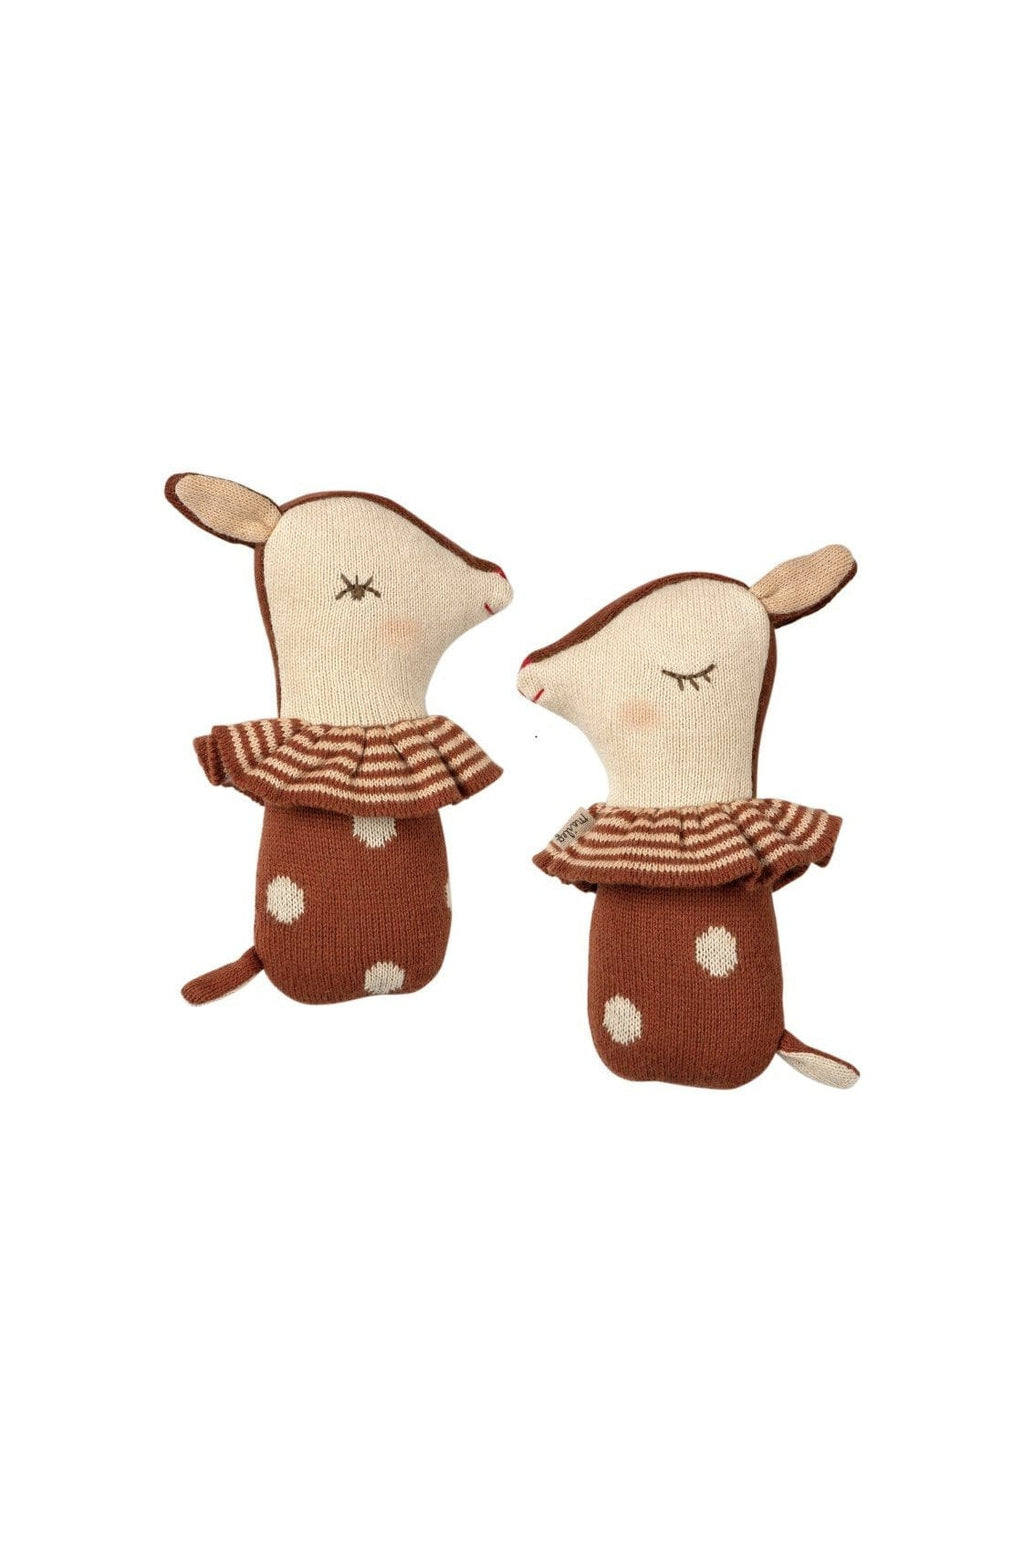 Maileg Bambi Rattle Dusty Rusty - Hello Little Birdie